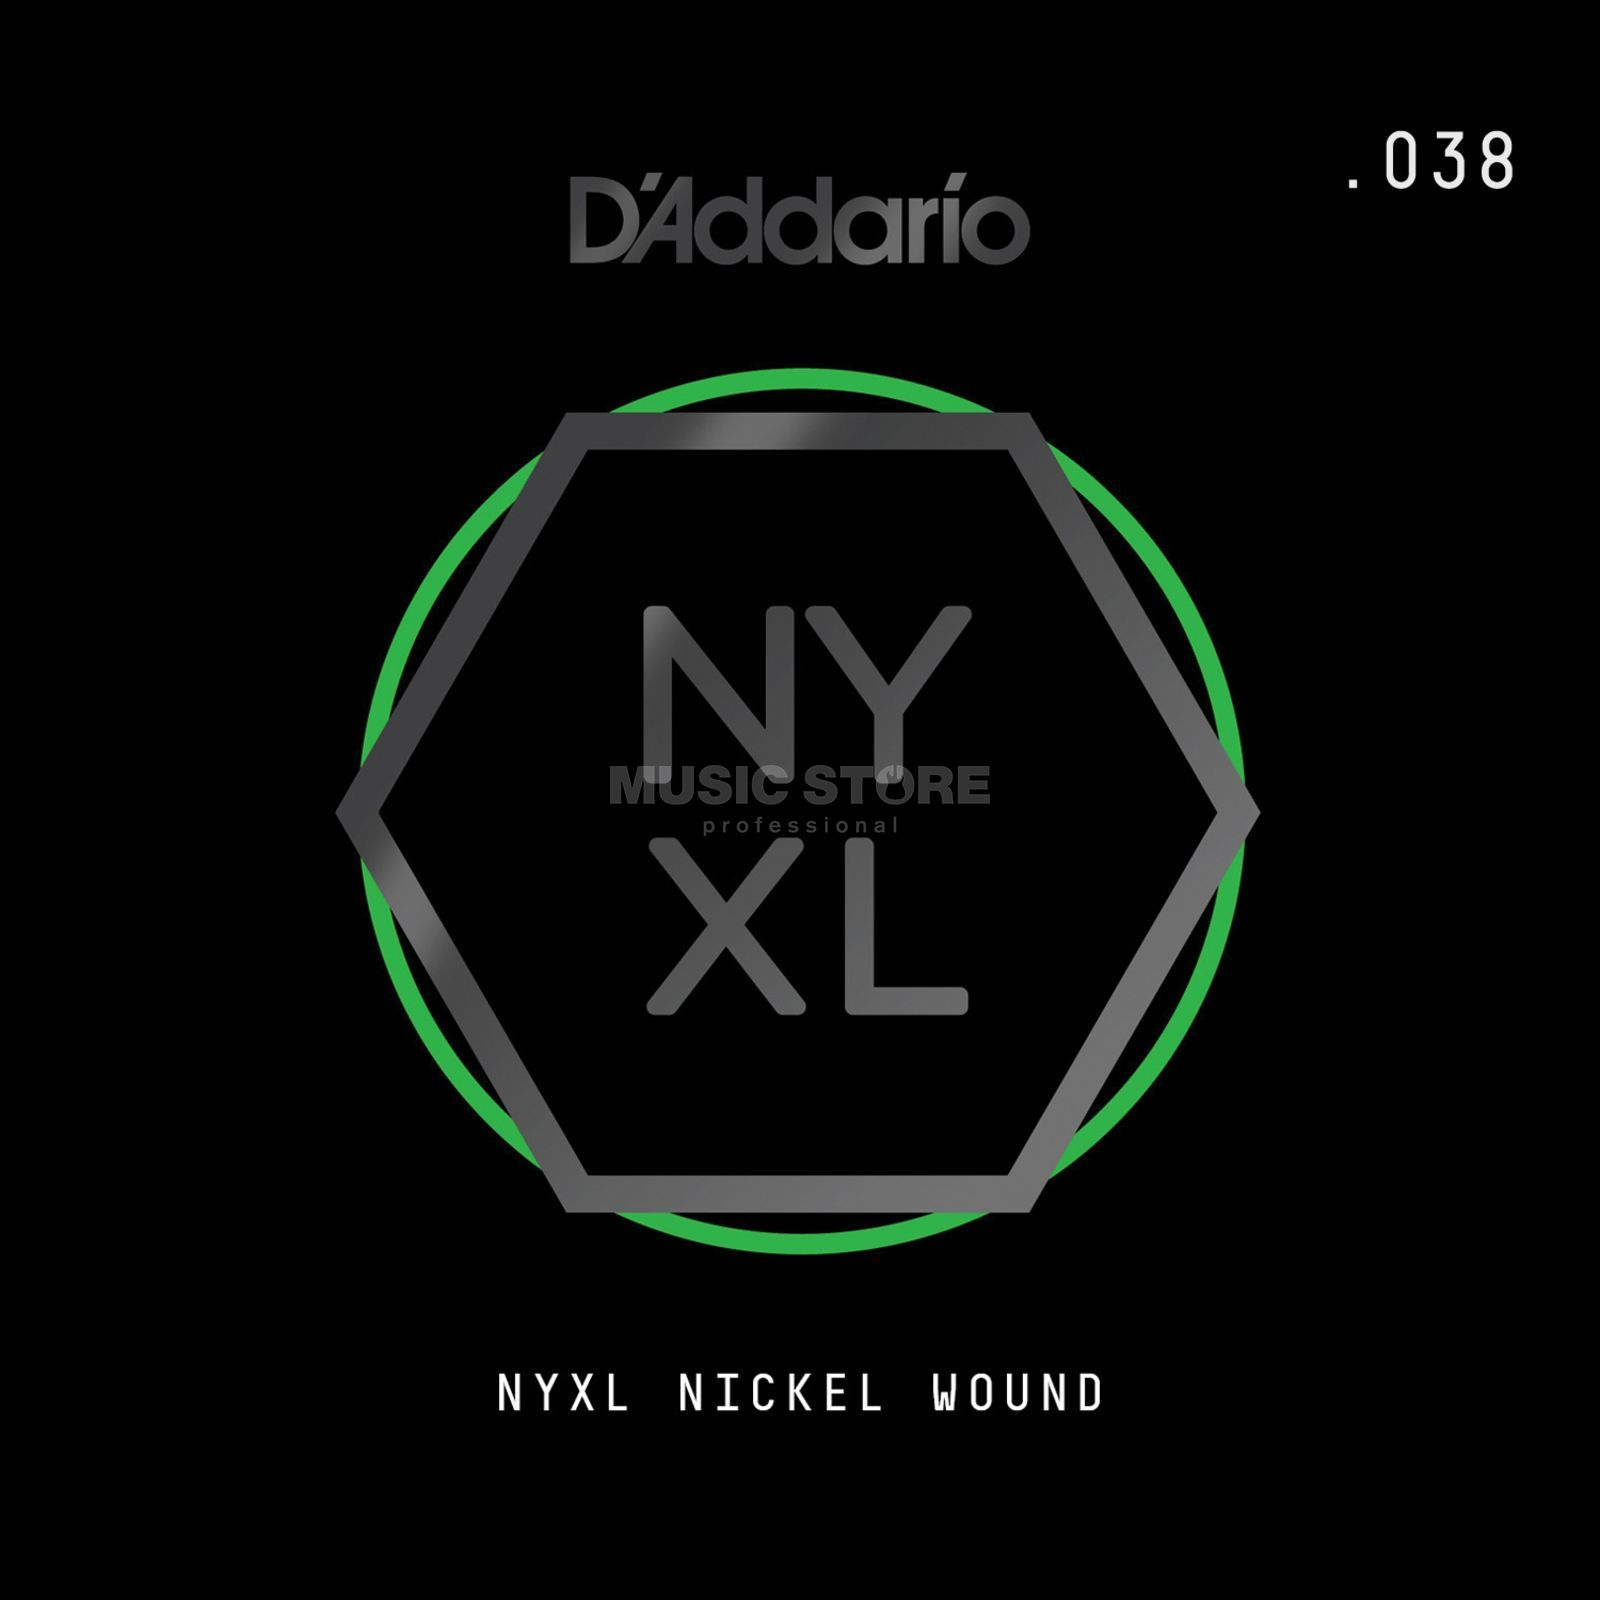 D'Addario NYNW038 Single String Nickel Wound Product Image